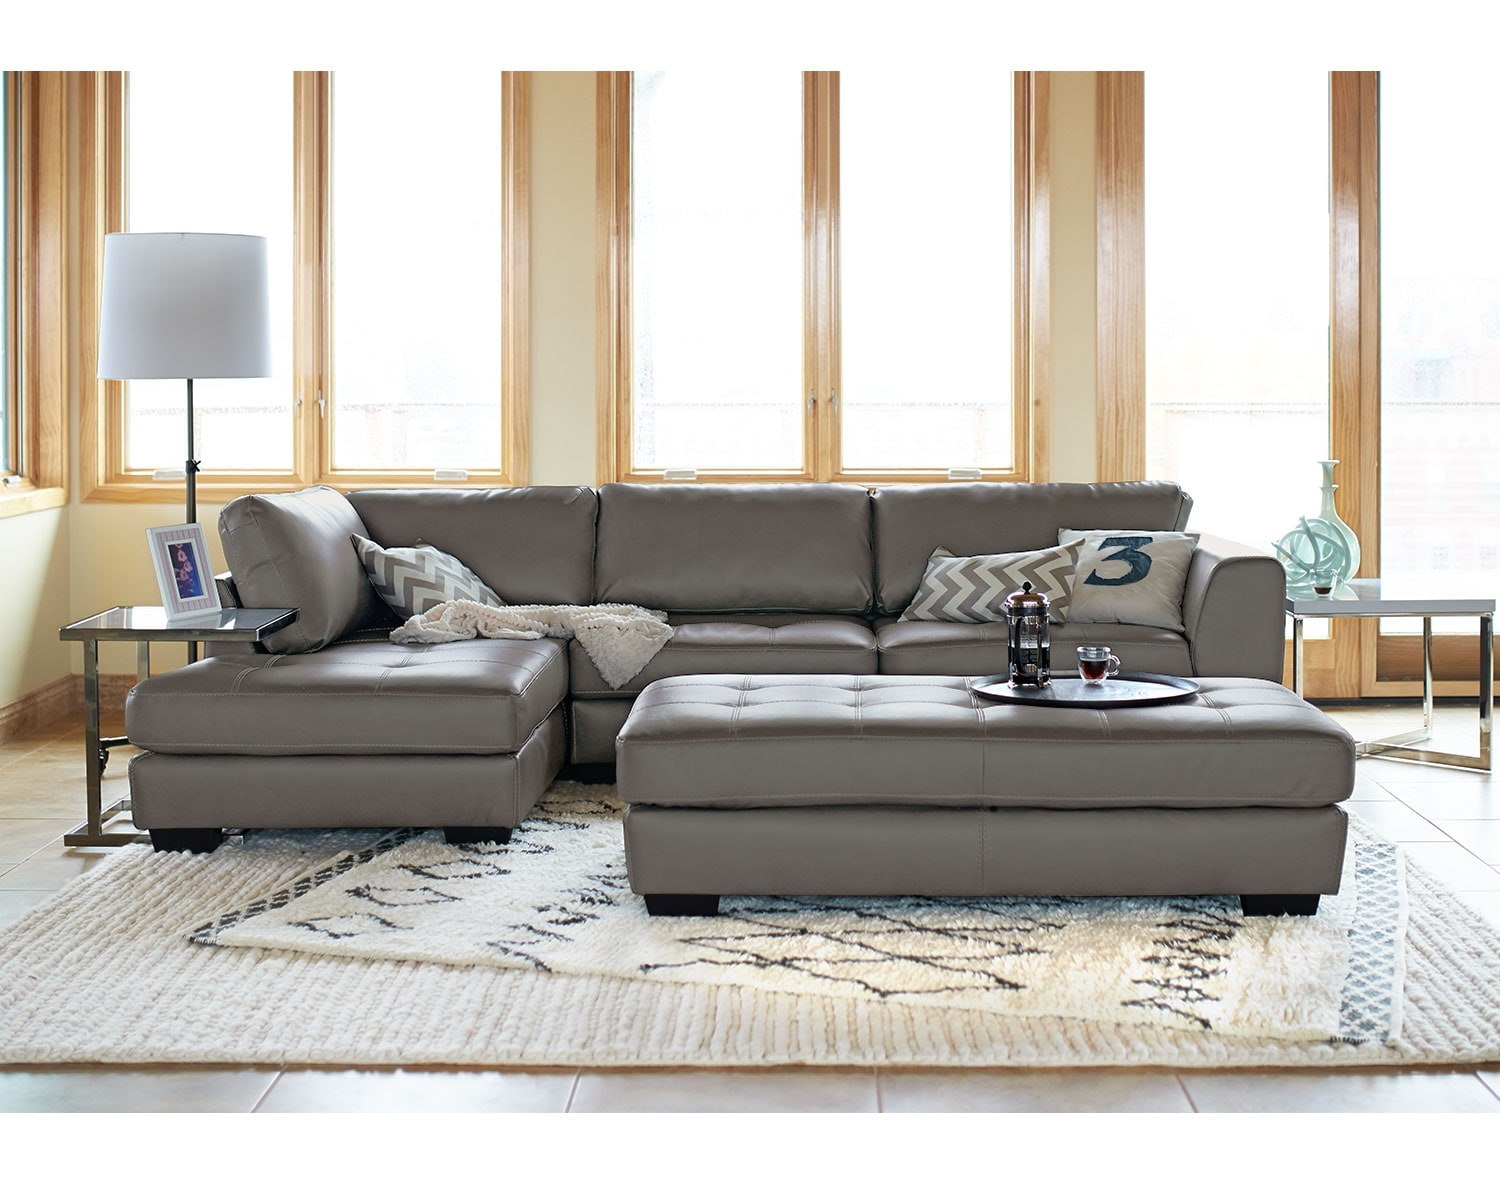 Living Room Furniture - The Lyon Gray Collection - 2 Pc. Sectional